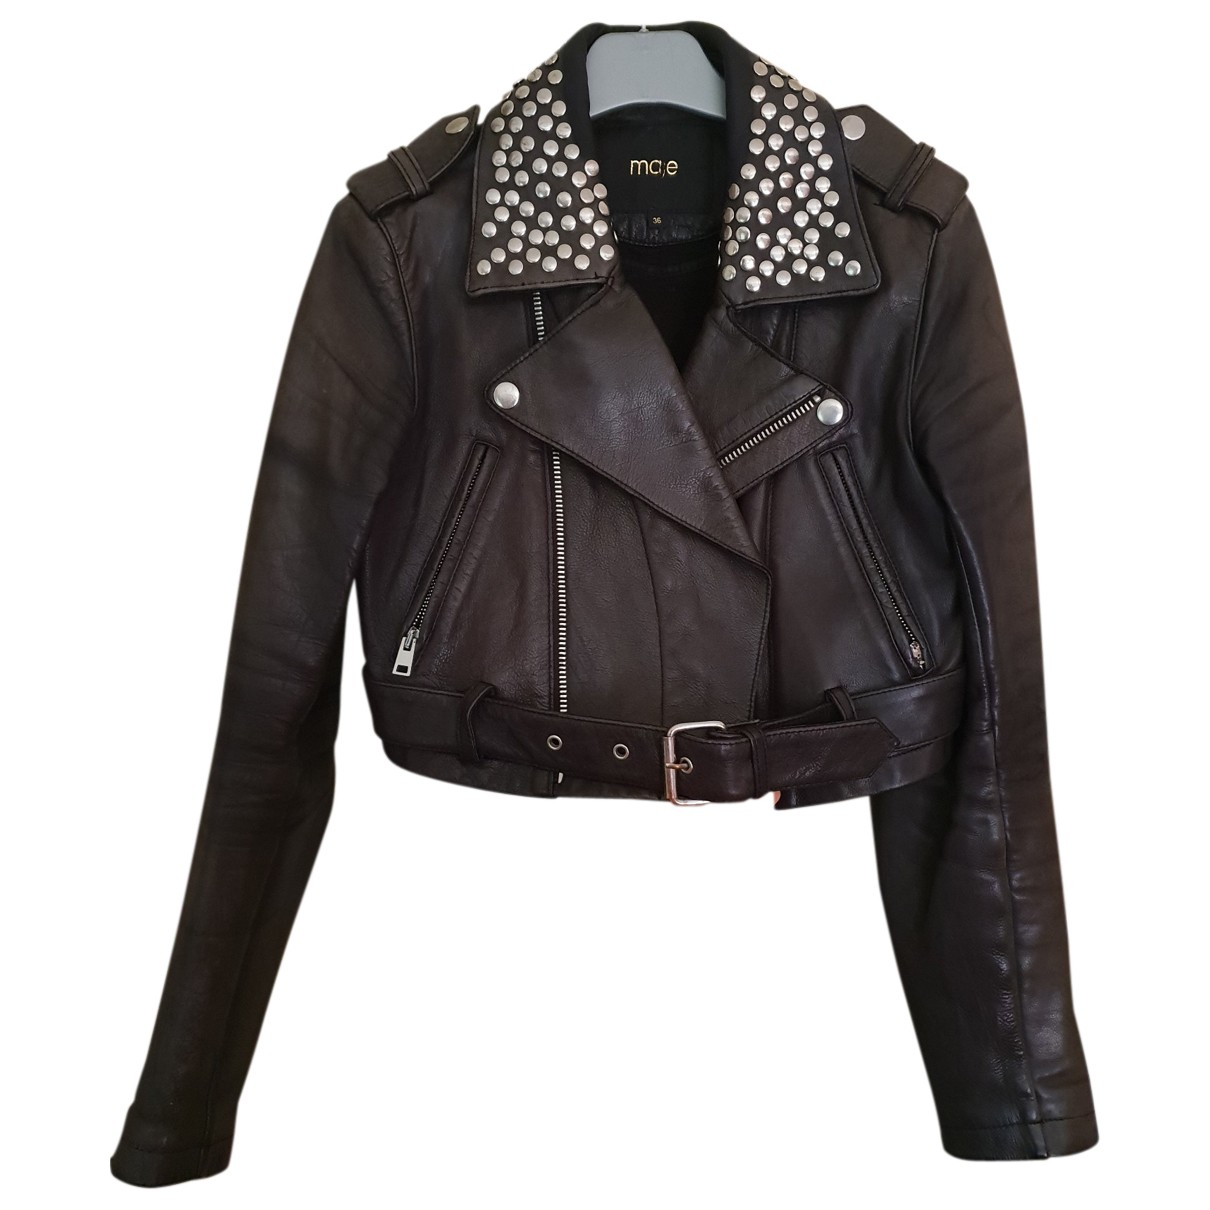 Maje N Black Leather jacket for Women S International